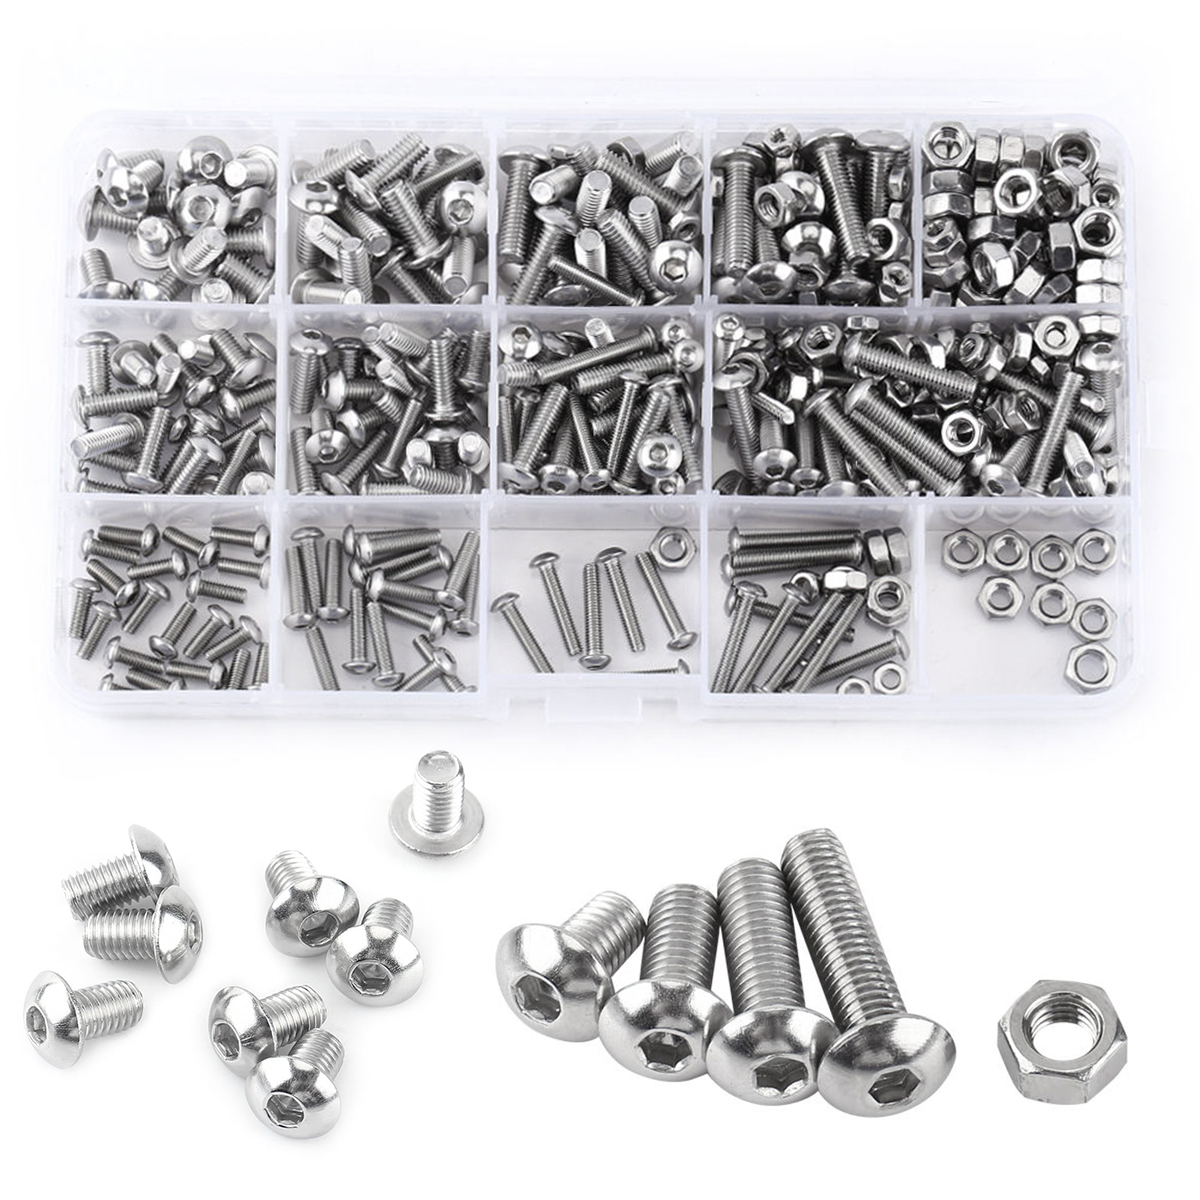 Mayitr 440pcs Stainless Steel Hex Socket Screws Nuts Button Head  M3 M4 M5 Bolts Assortment Kit For Hardware Accessories